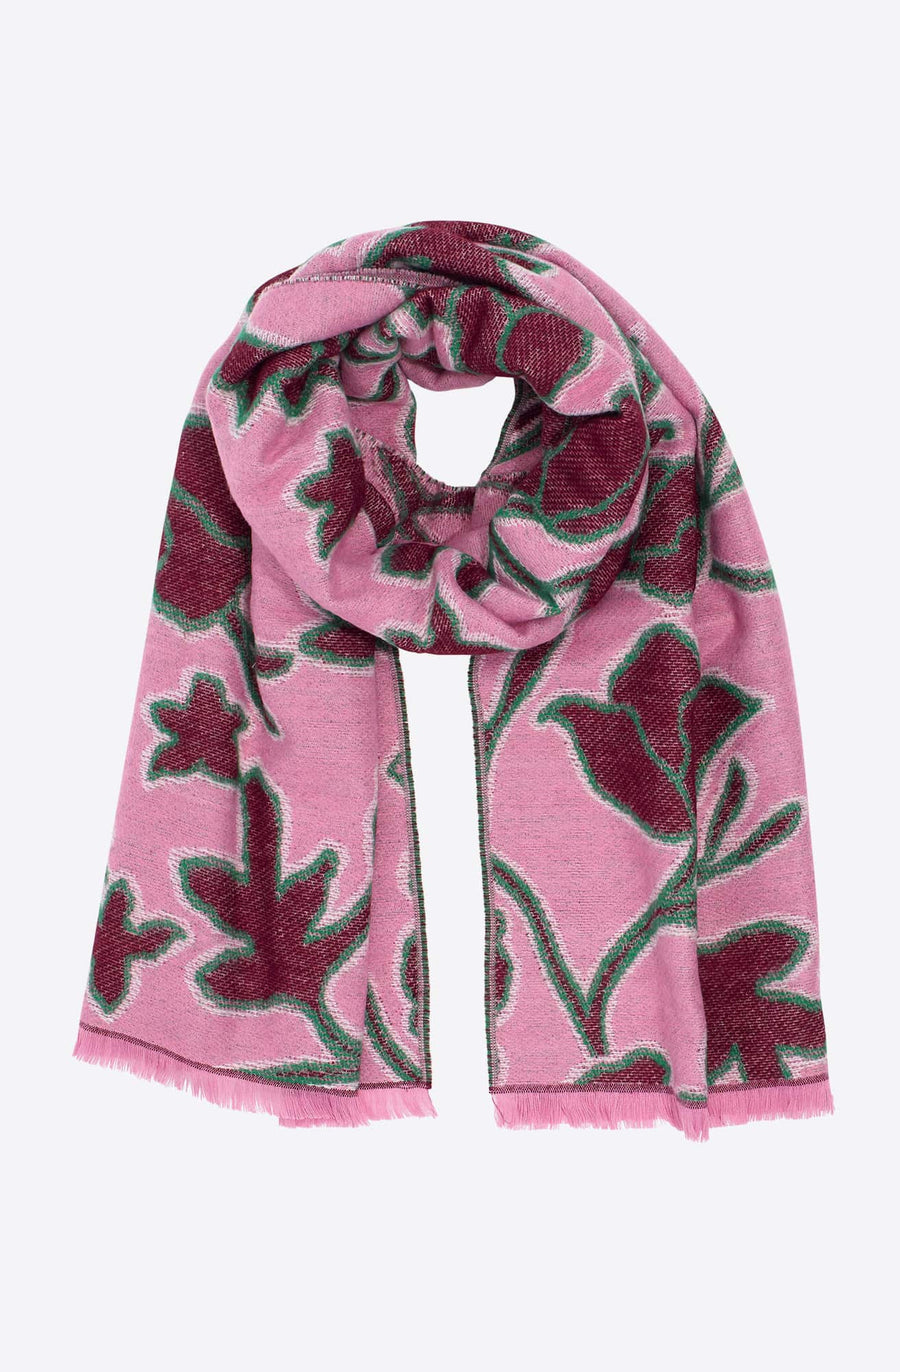 Graphic Floral Jacquard Scarf-rose